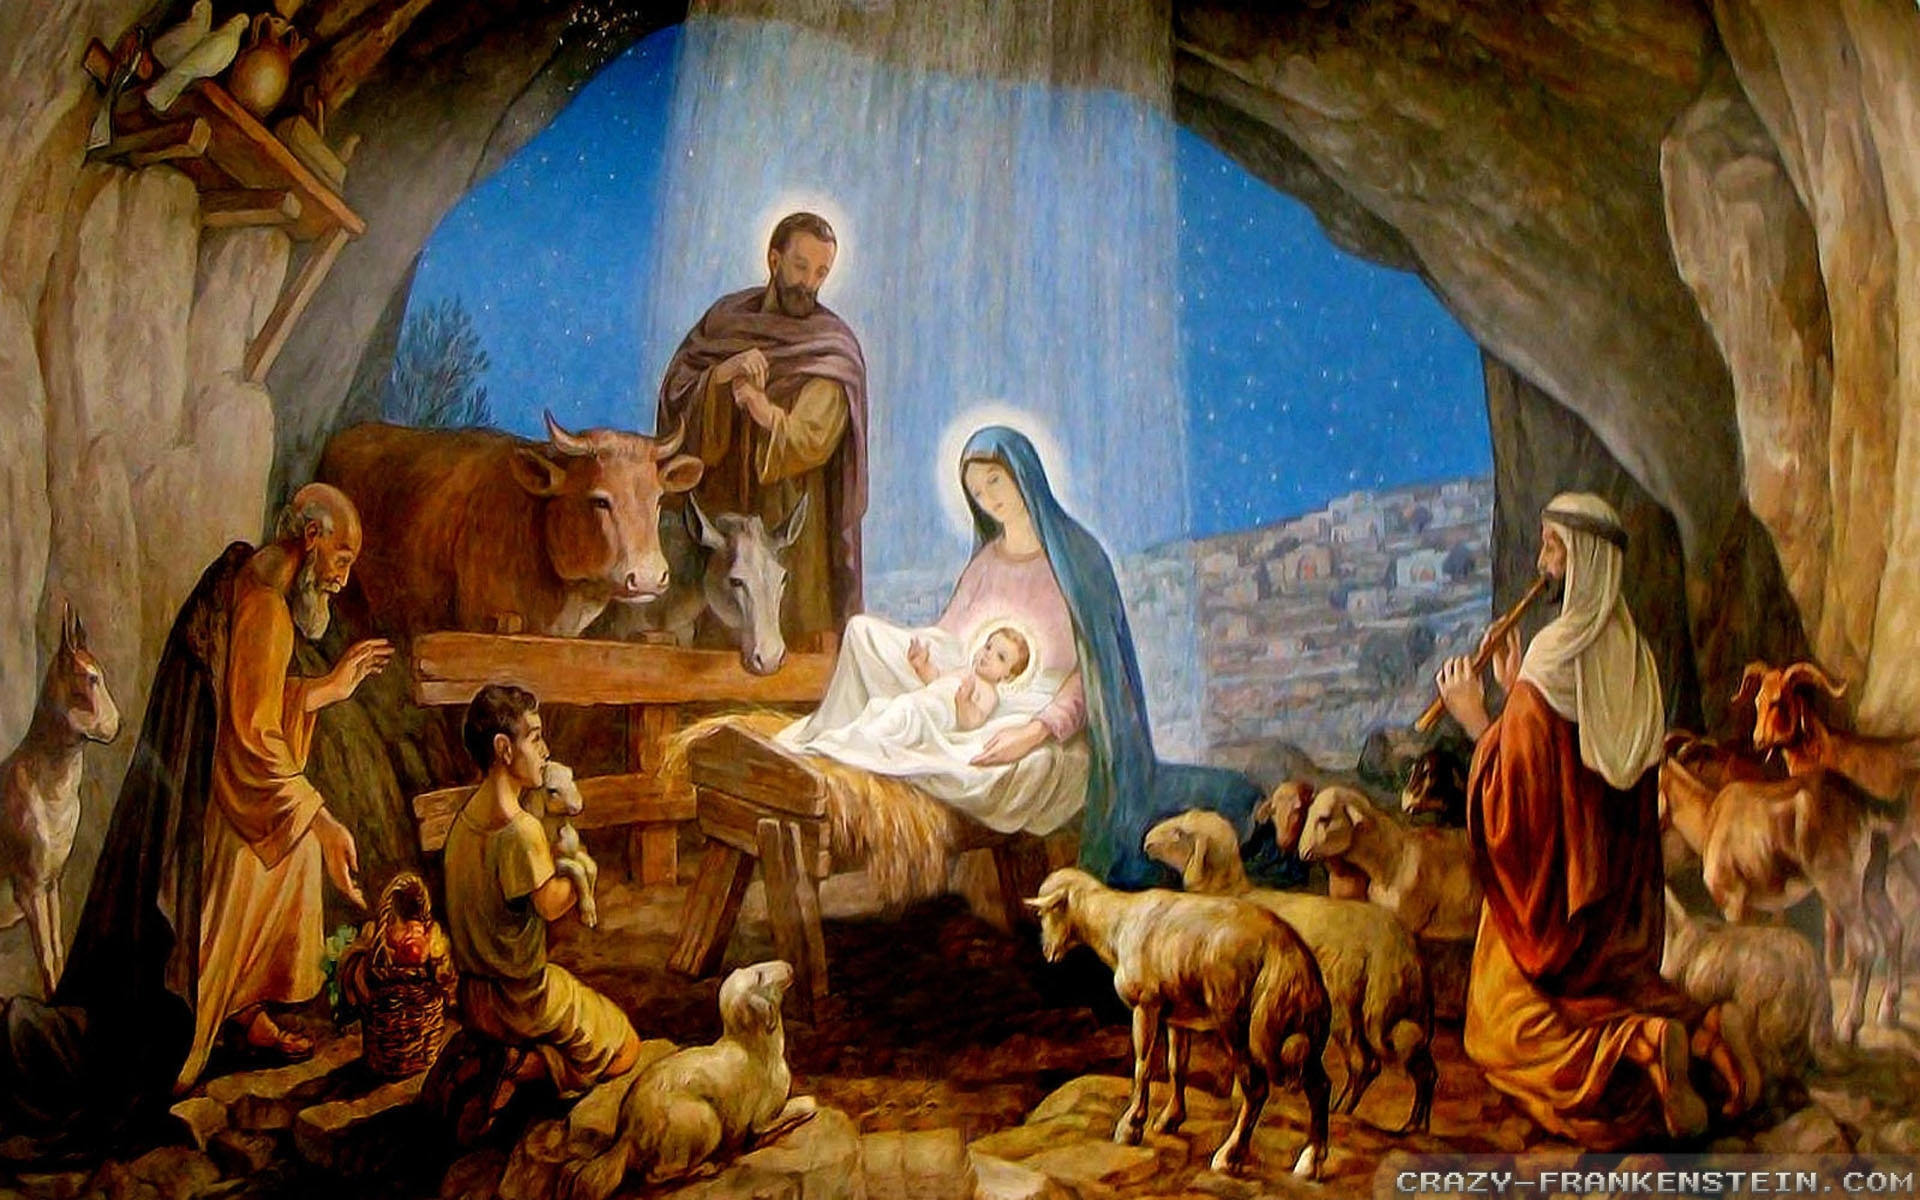 merry christmas nativity scene ultra hd wallpapers, new 4k